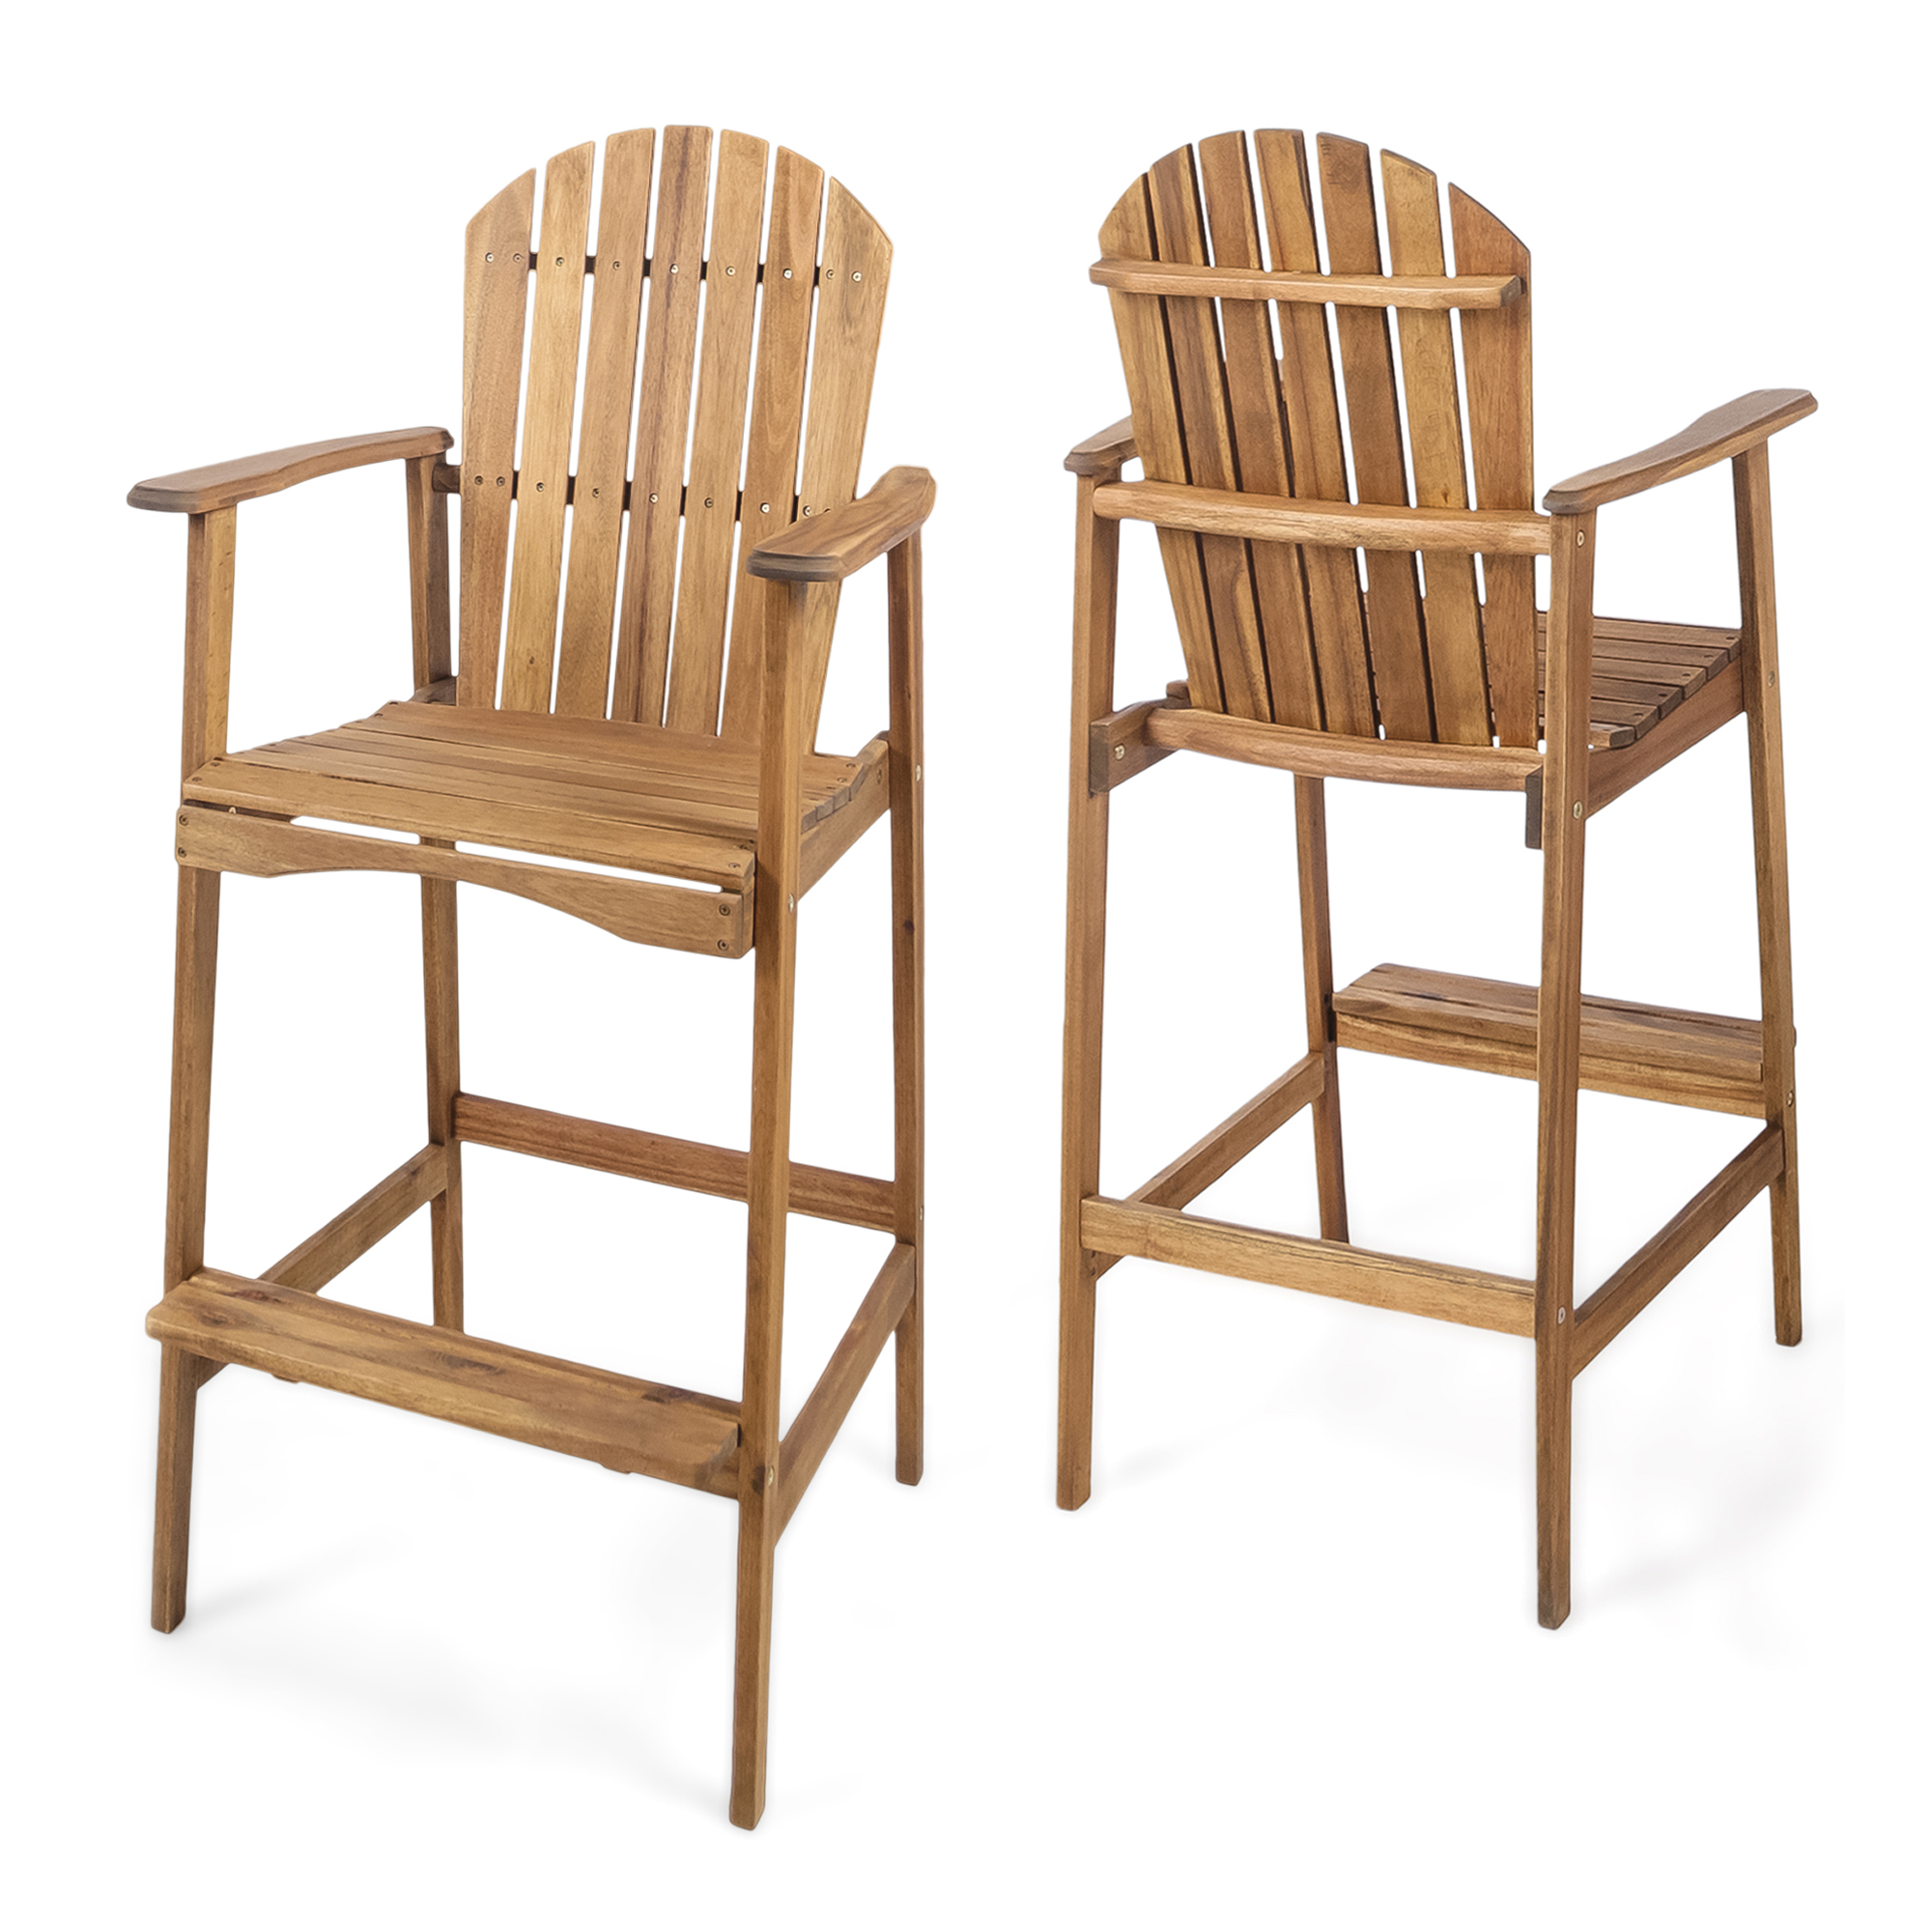 Malibu Outdoor Acacia Wood Adirondack Barstools, Set of 2, Natural Stained